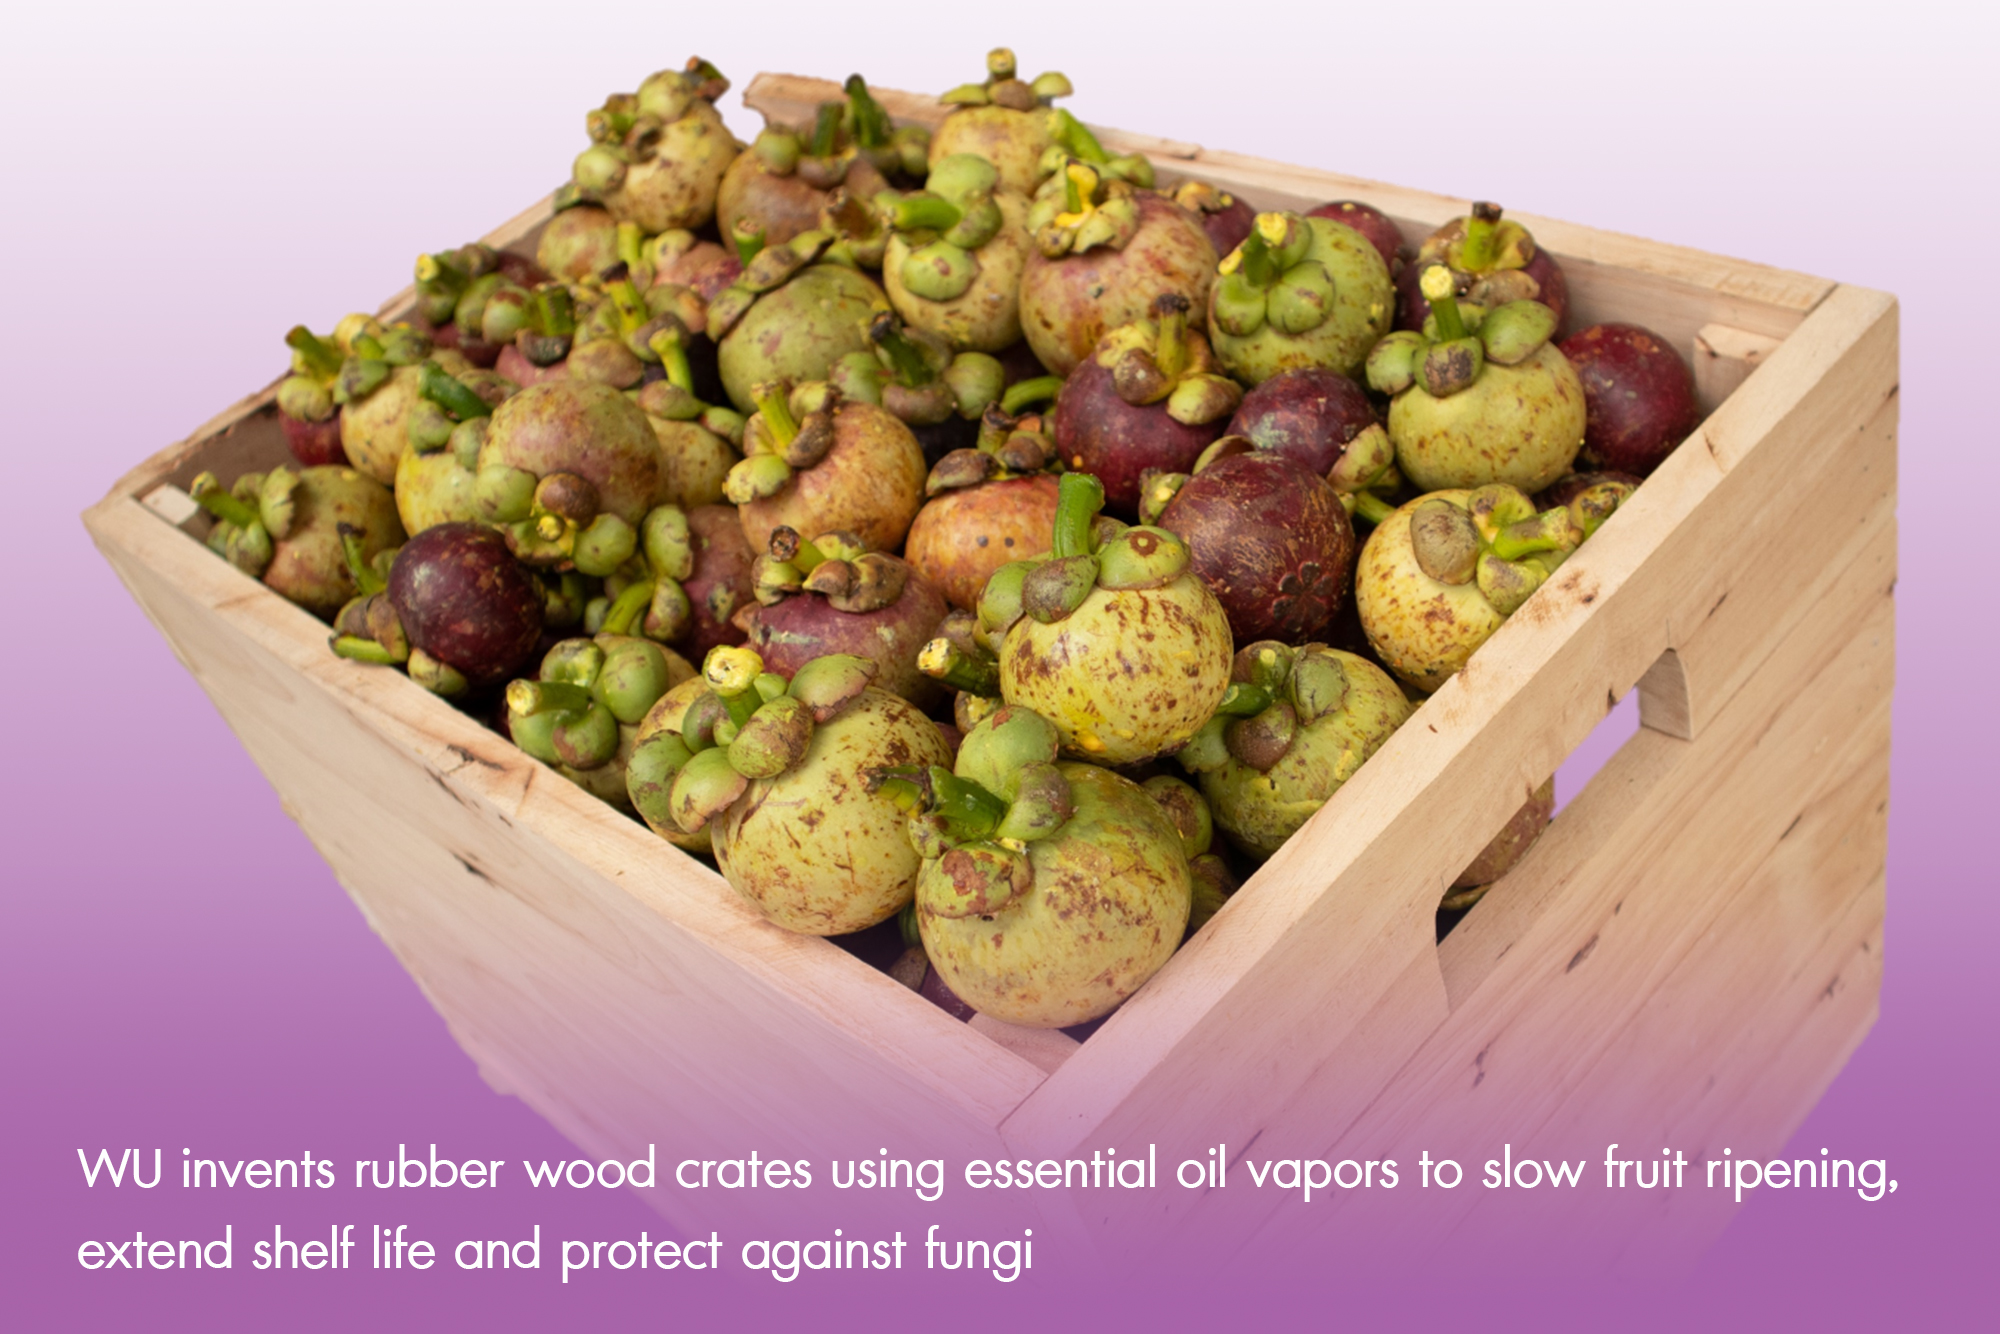 WU invents rubber wood crates using essential oil vapors to slow fruit ripening, extend shelf life and protect against fungi